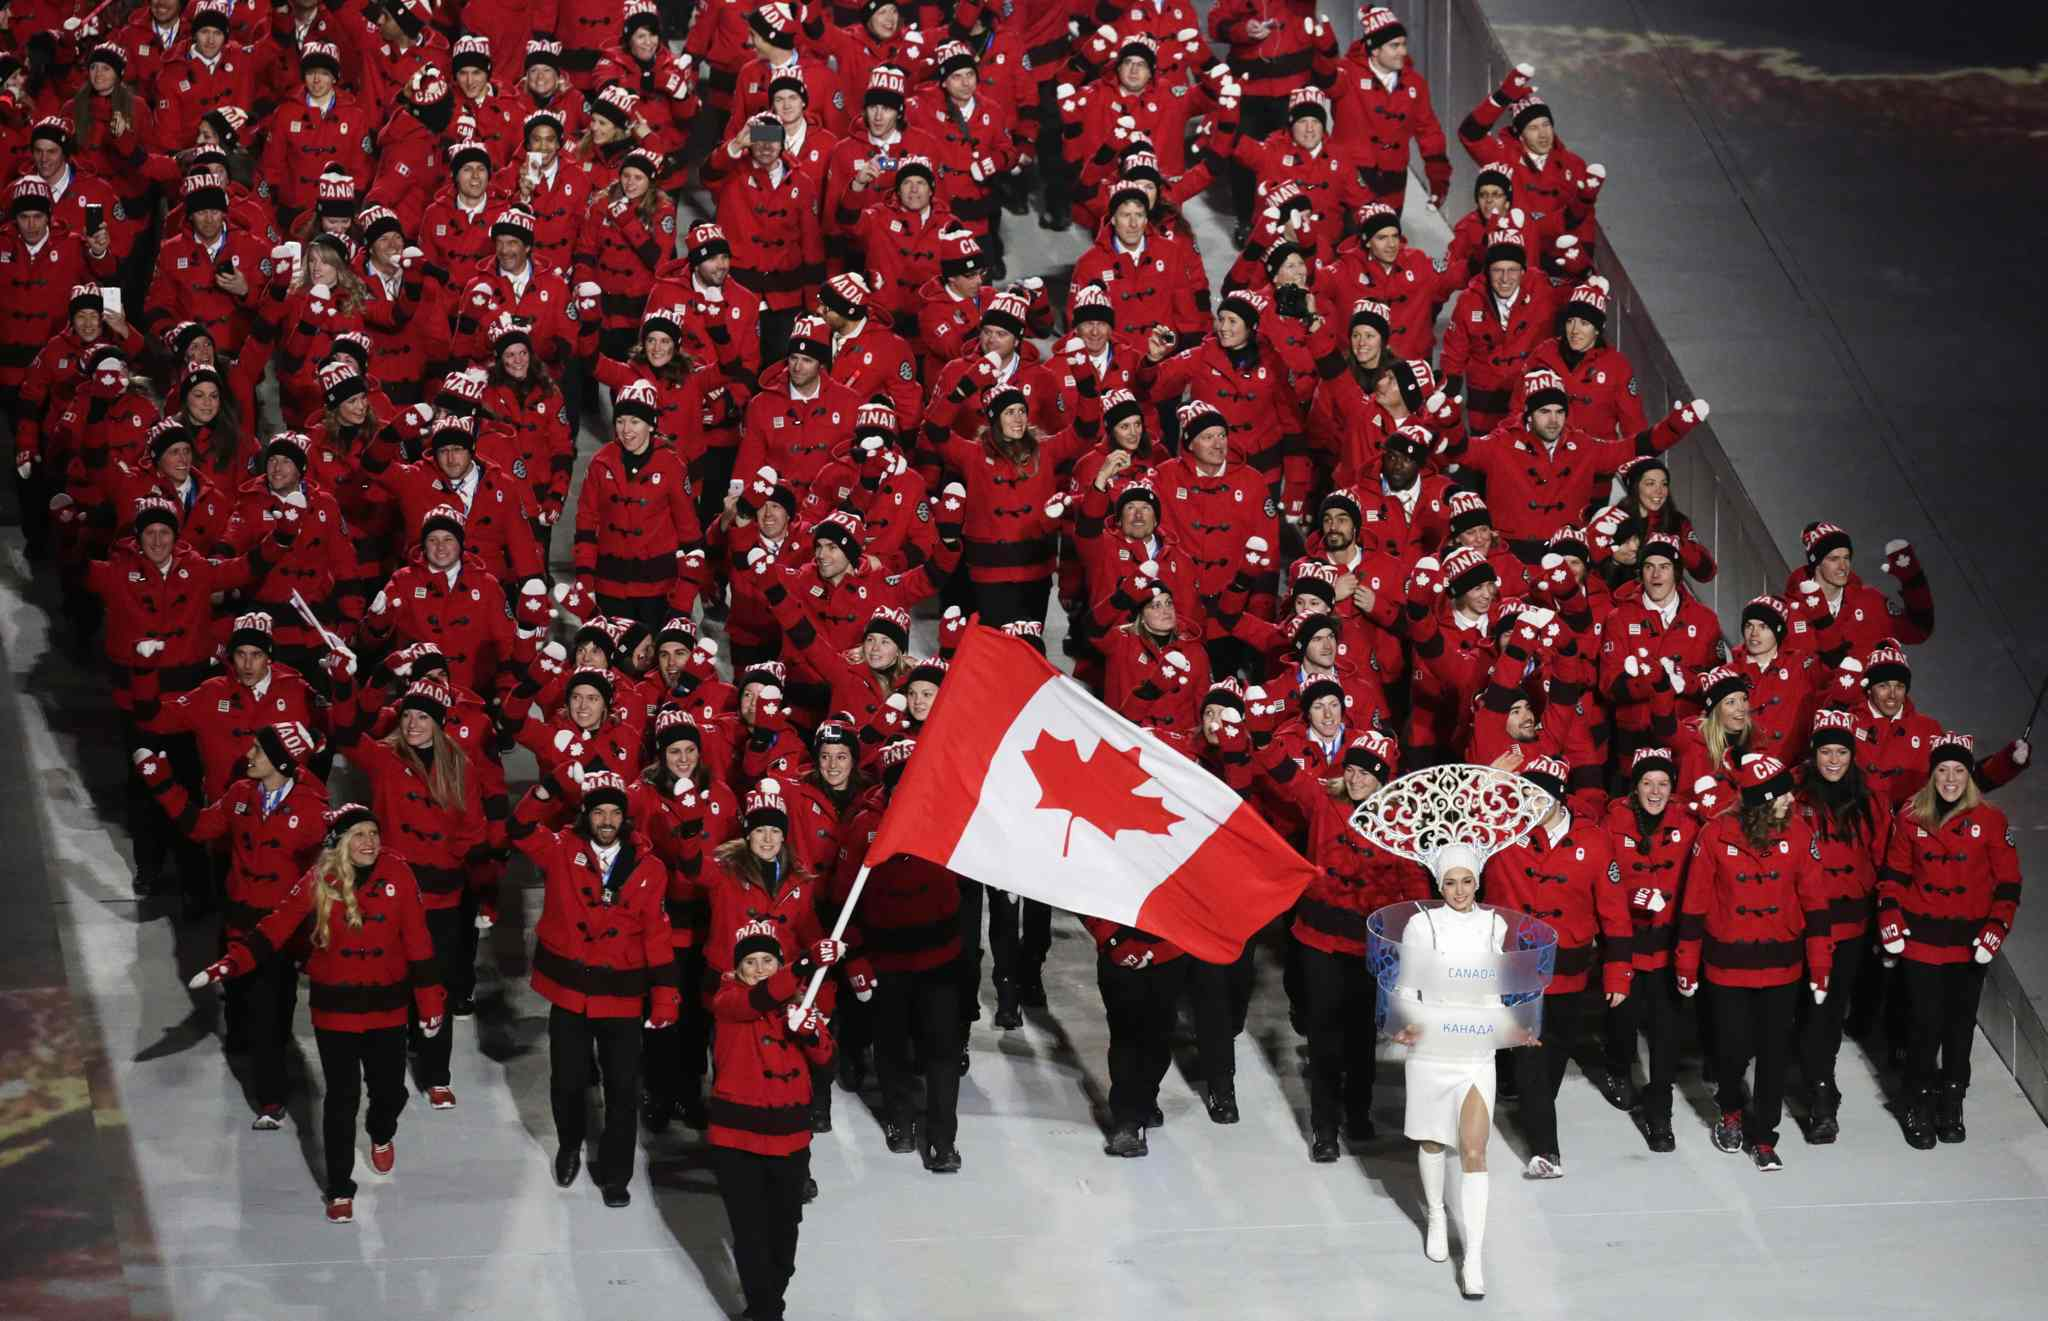 Hayley Wickenheiser of Canada carries the national flag as she leads the team during the opening ceremony of the 2014 Winter Olympics in Sochi, Russia, Friday, Feb. 7, 2014. (AP Photo/Robert F. Bukaty)